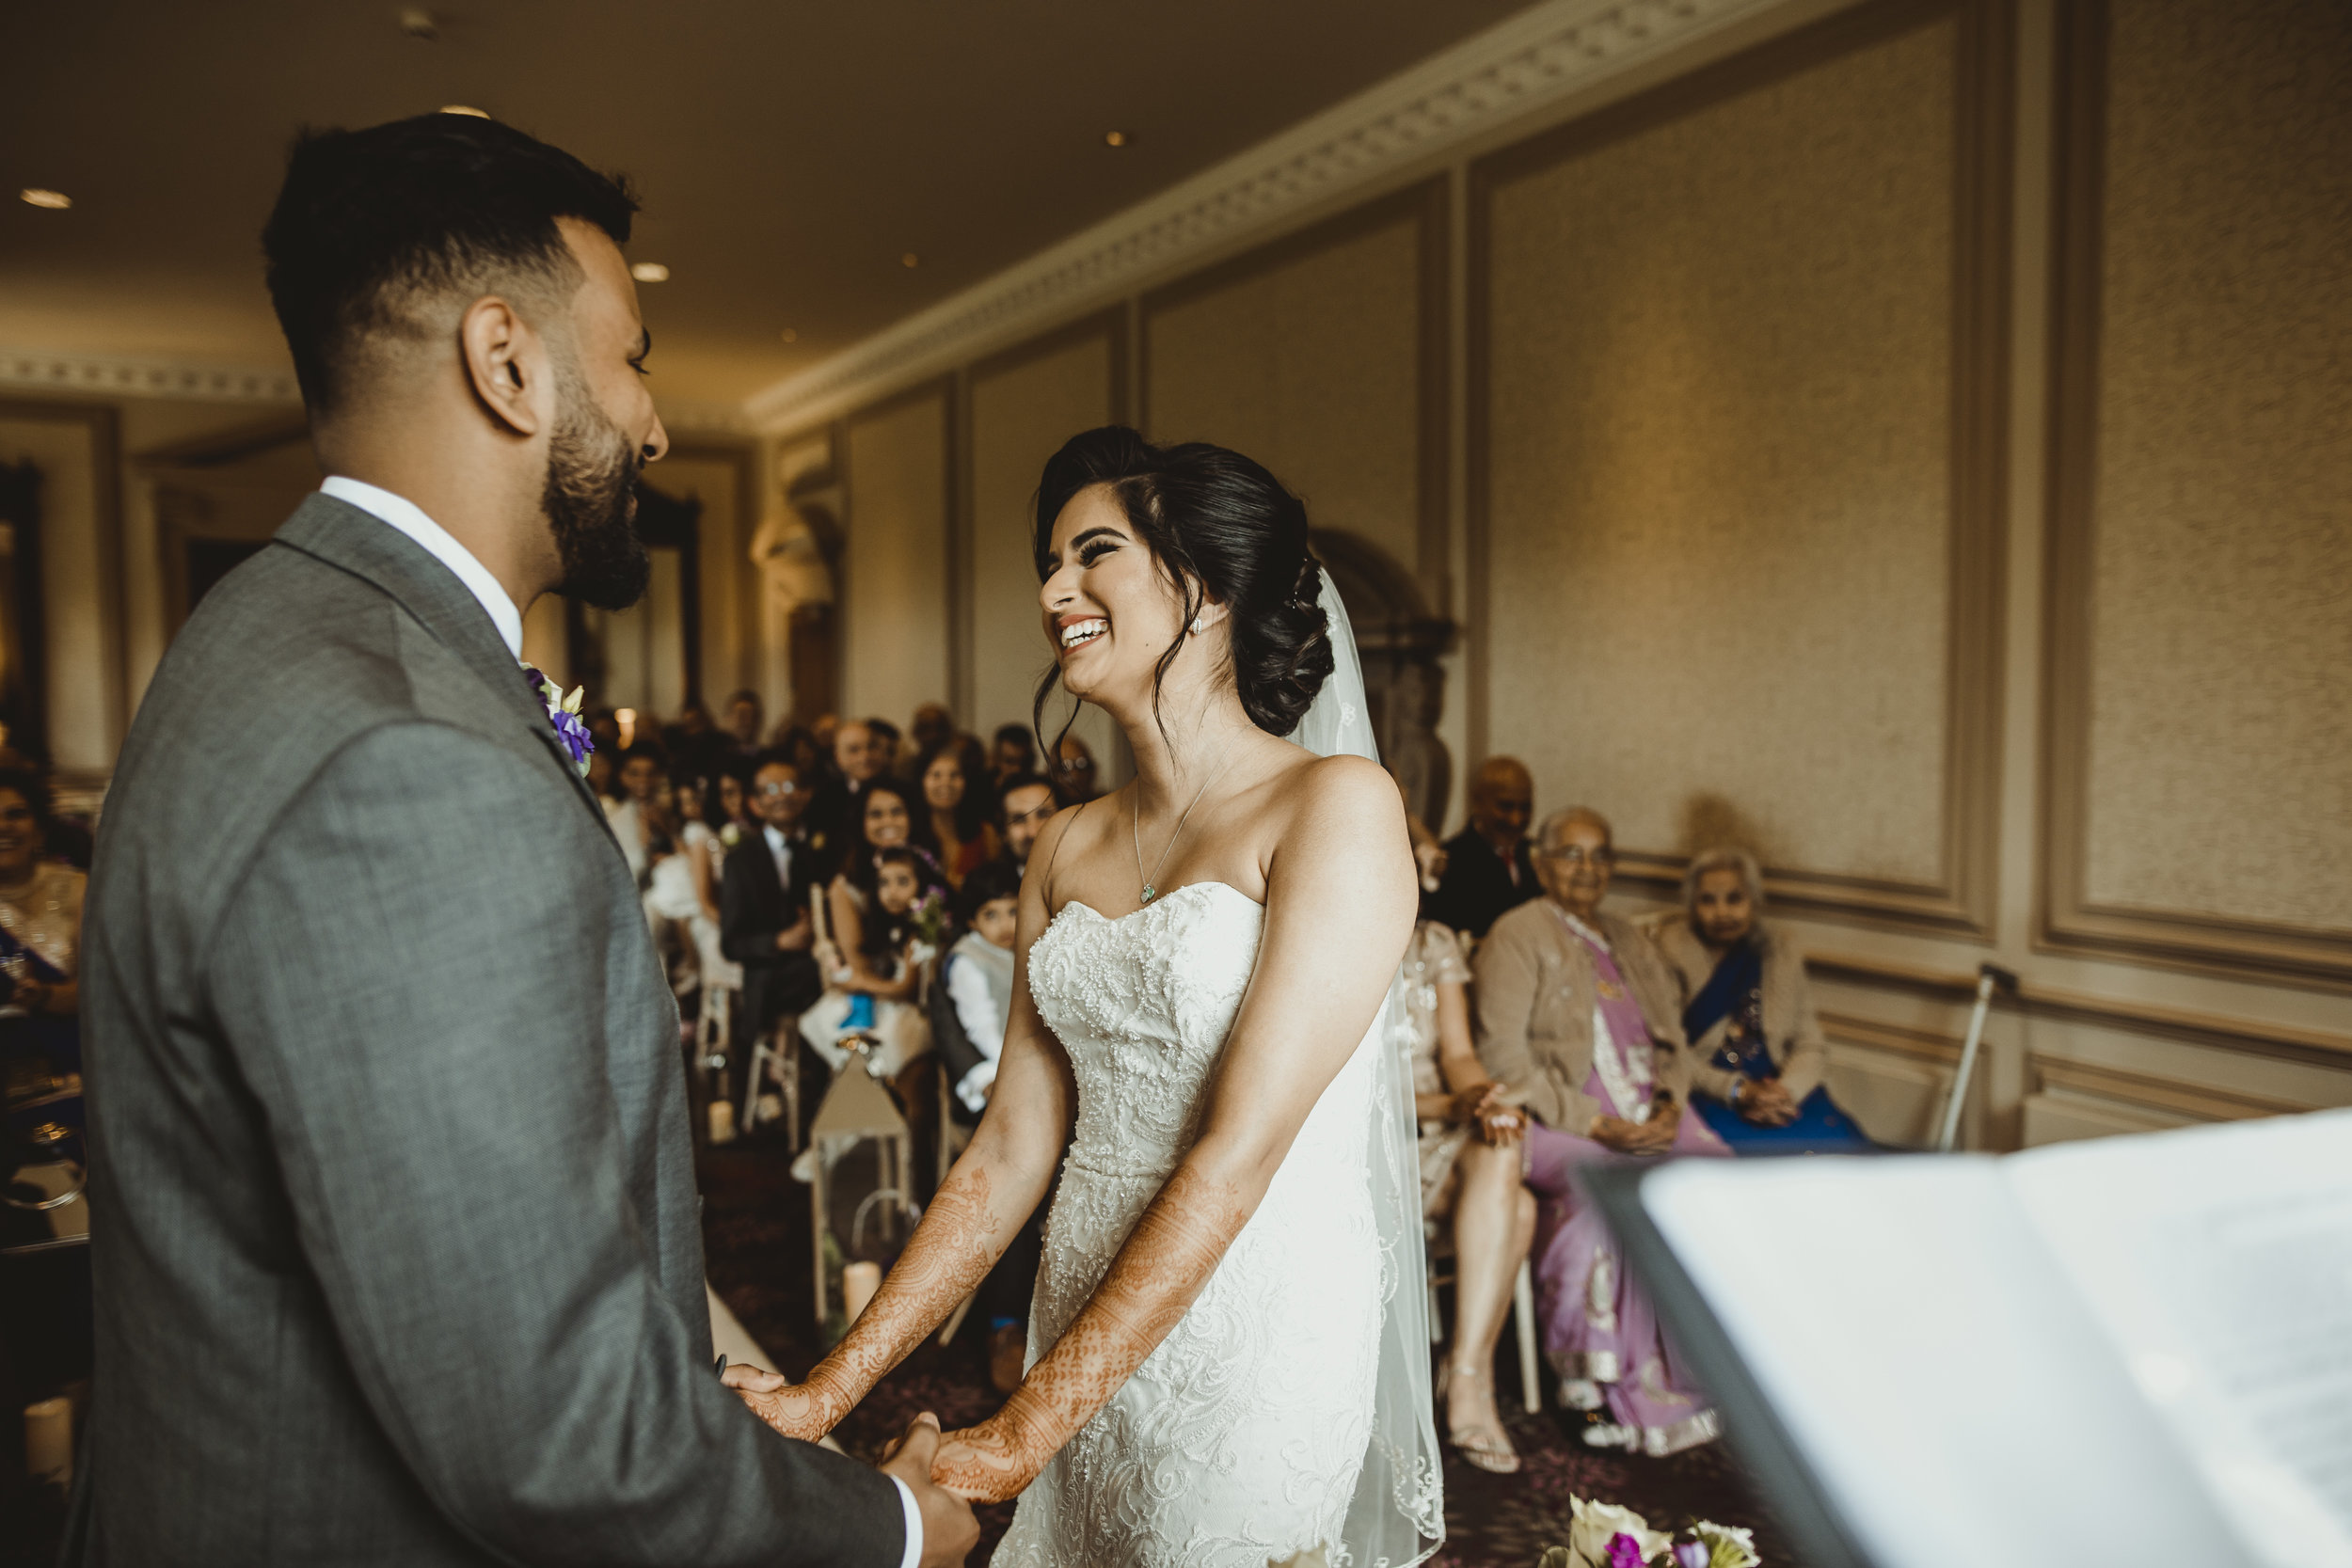 N&J_MILTON_KEYNES_WEDDING_LONDON_PHOTOGRAPHER_ASIAN_WEDDING-416.JPG